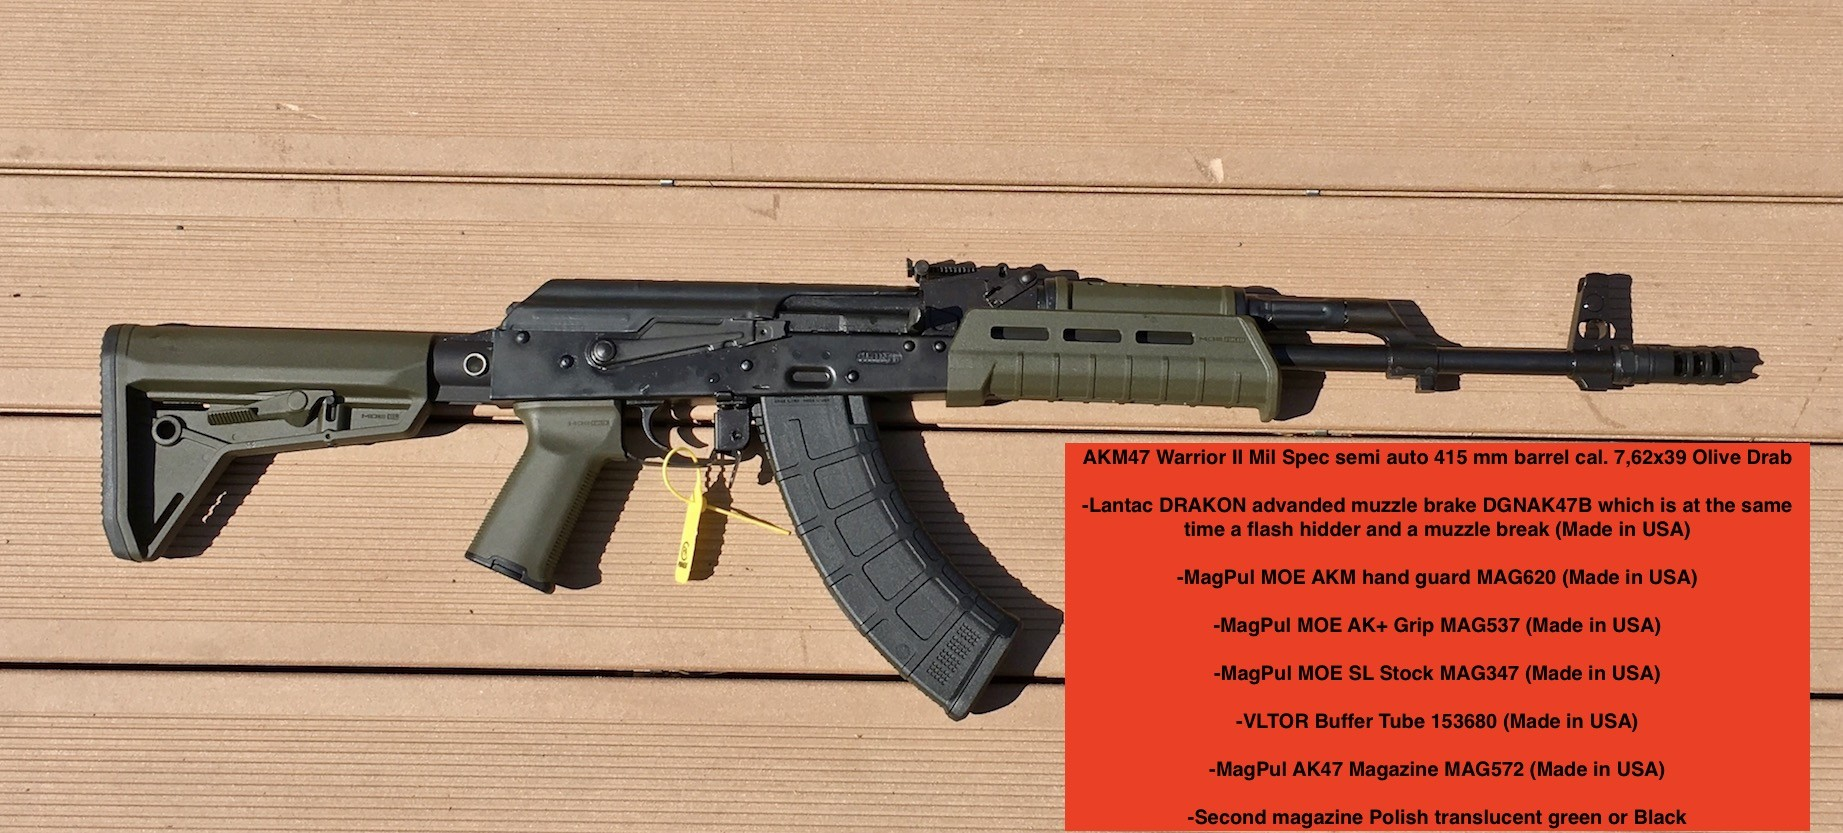 AKM47 Warrior II Olive Drab